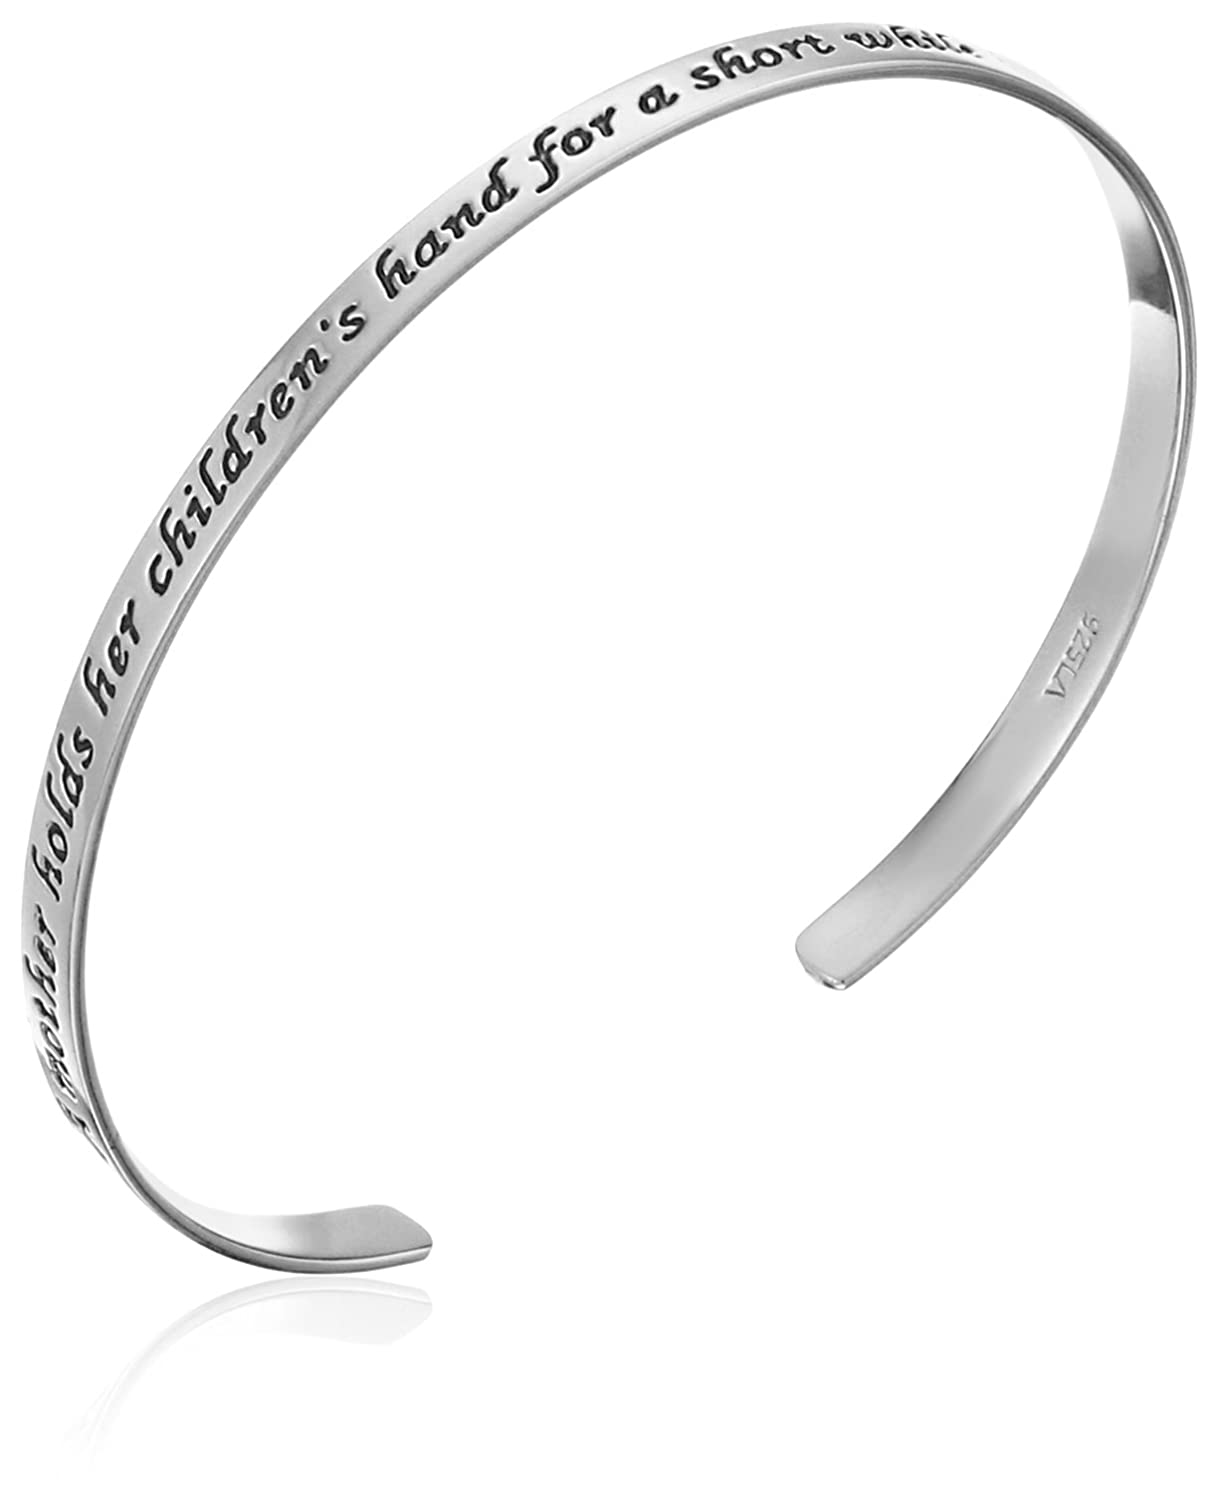 Why this special bracelet holds so much significance for Prince Harry forecasting